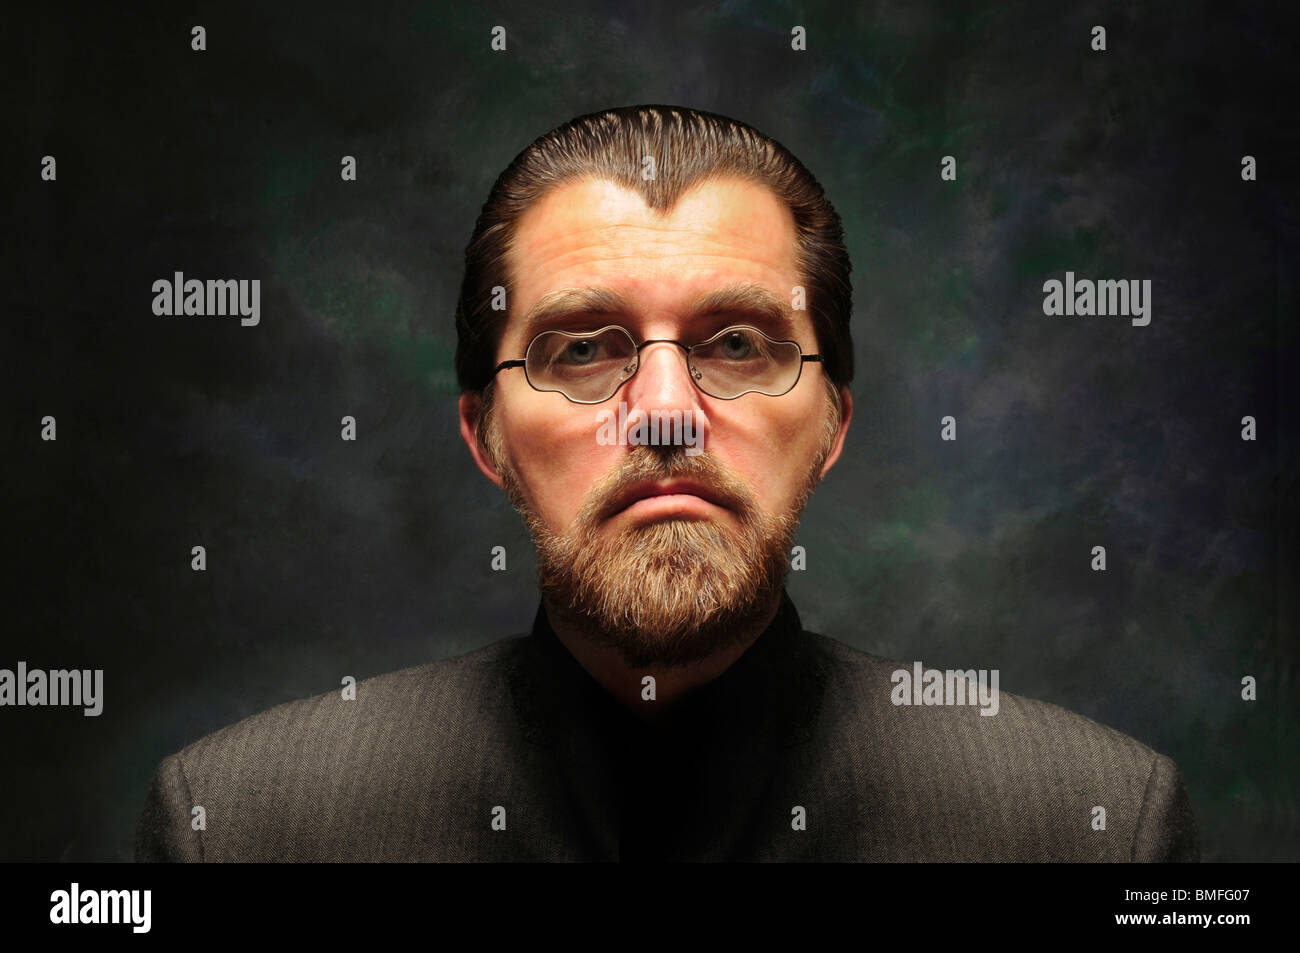 Orwellian character with distorted misshapen glasses and beard against a dark background - Stock Image